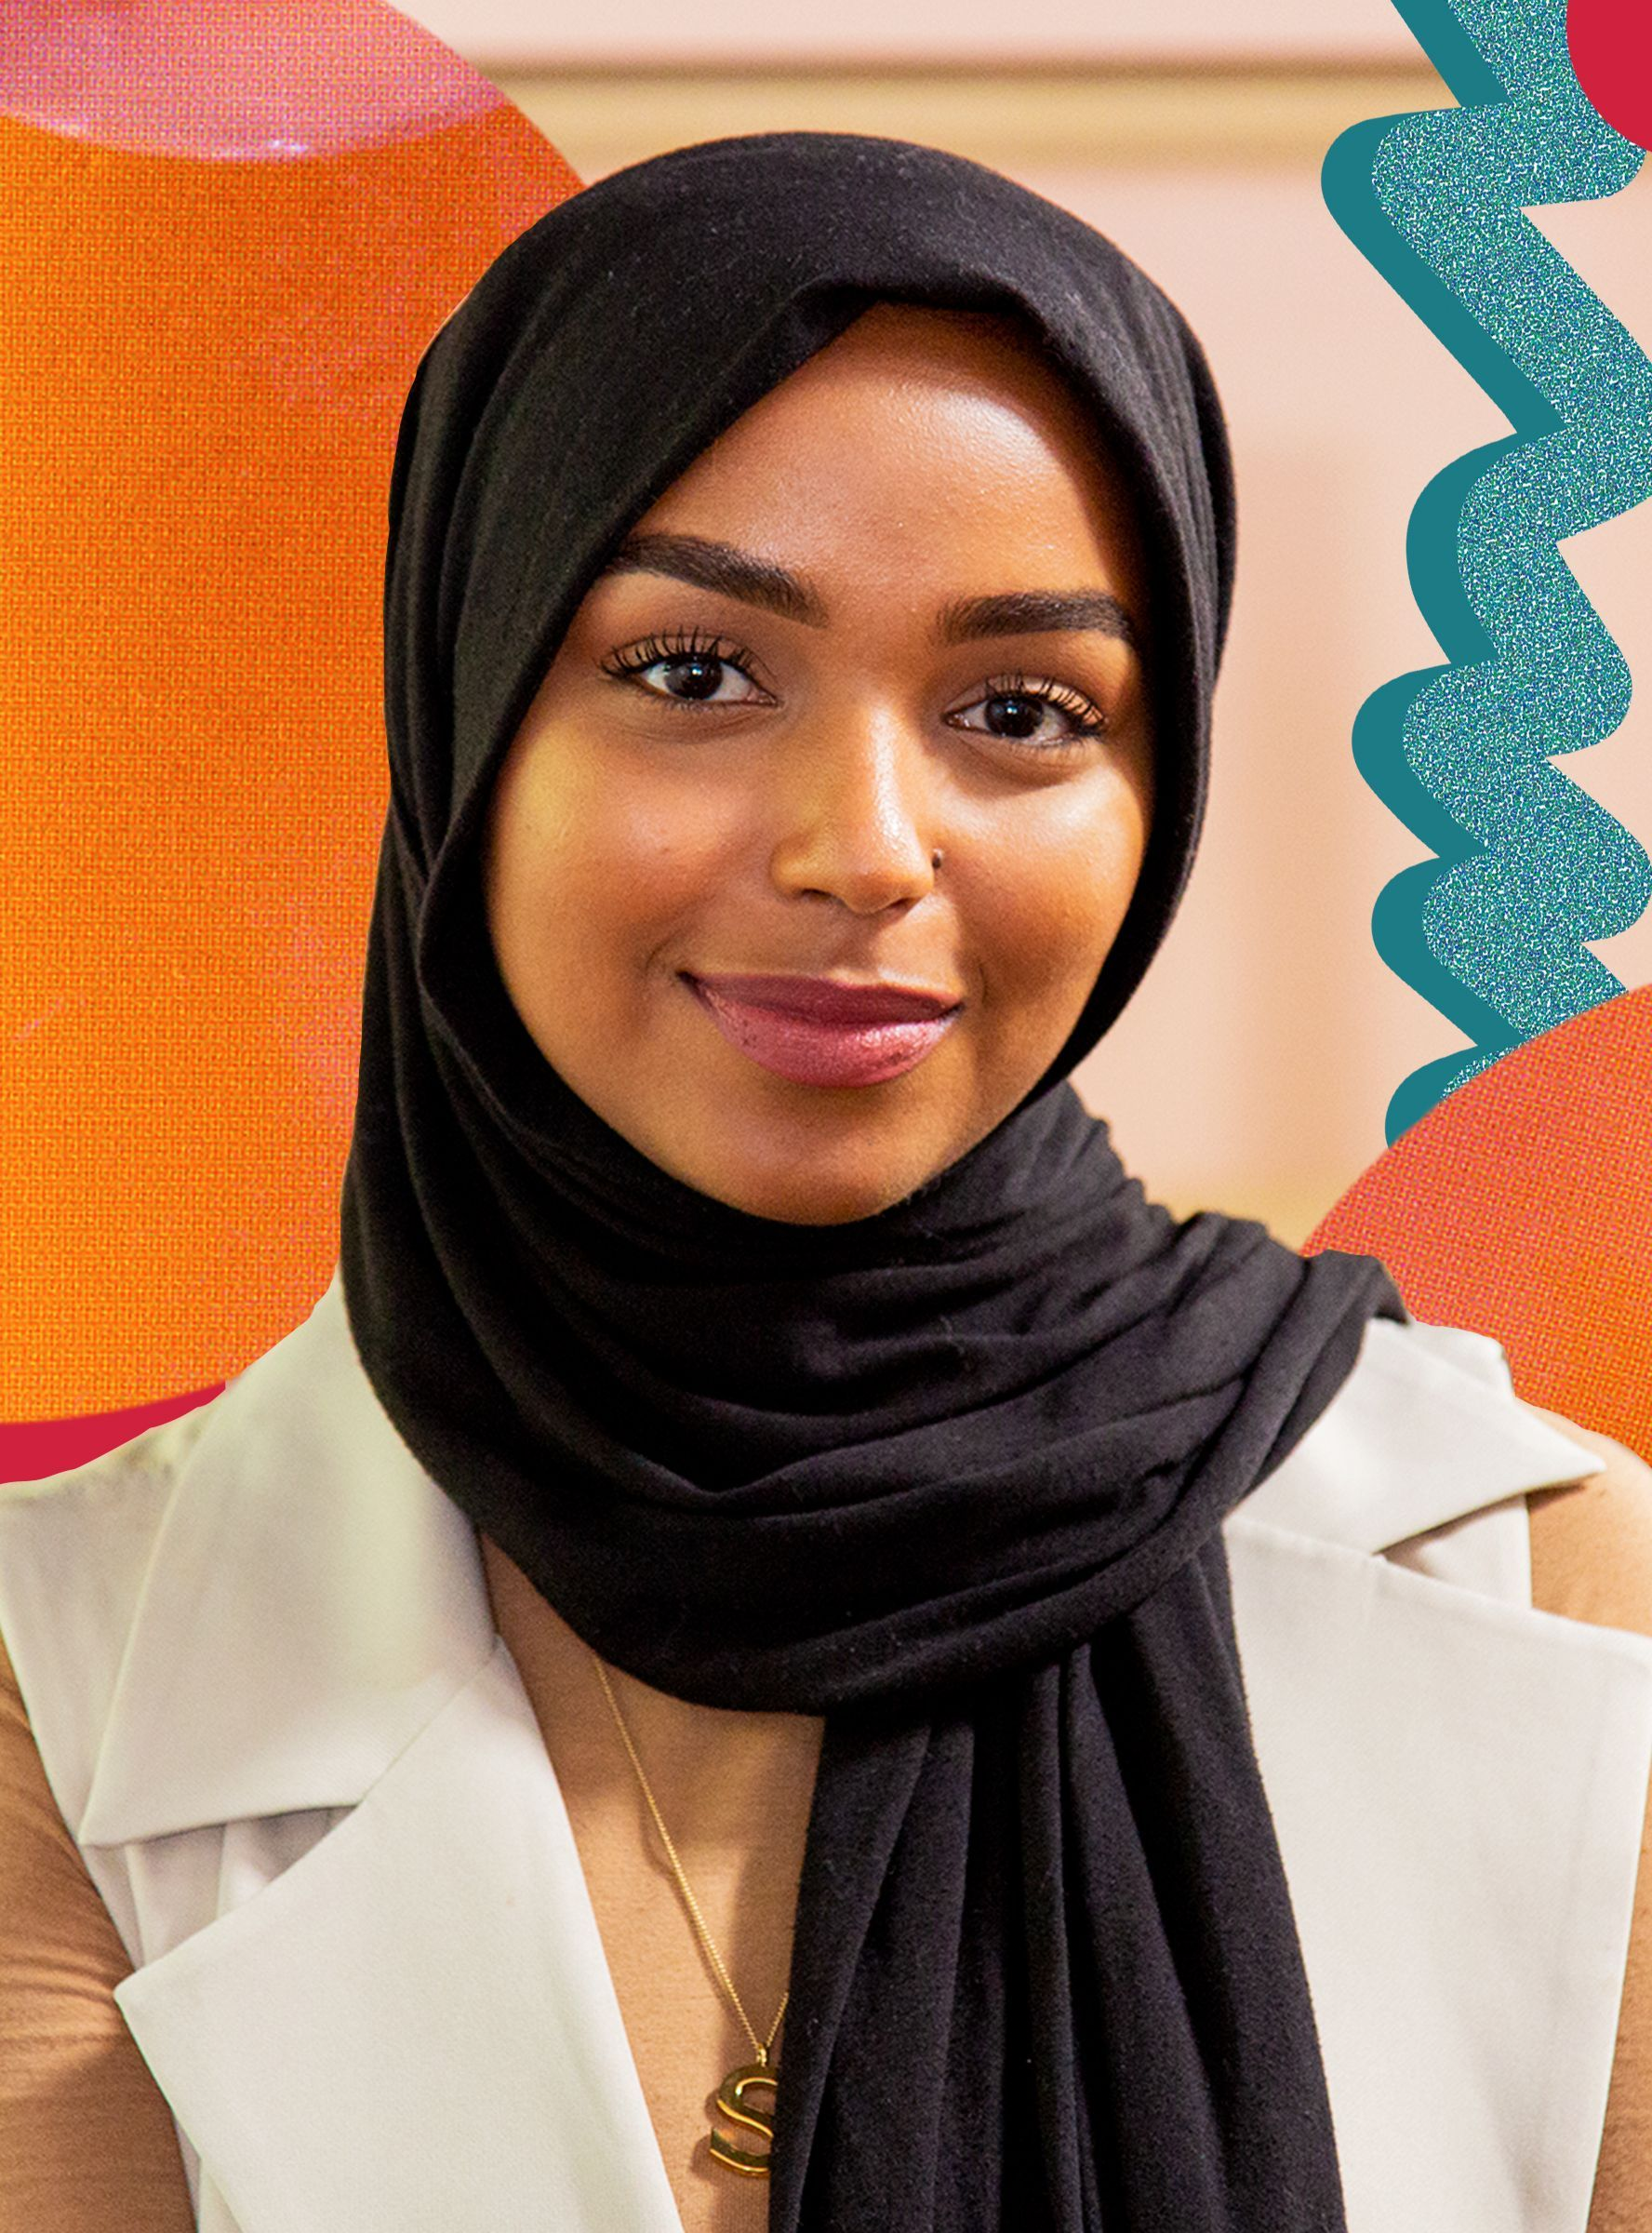 On eshq, a dating app for muslims, women get to make the first move